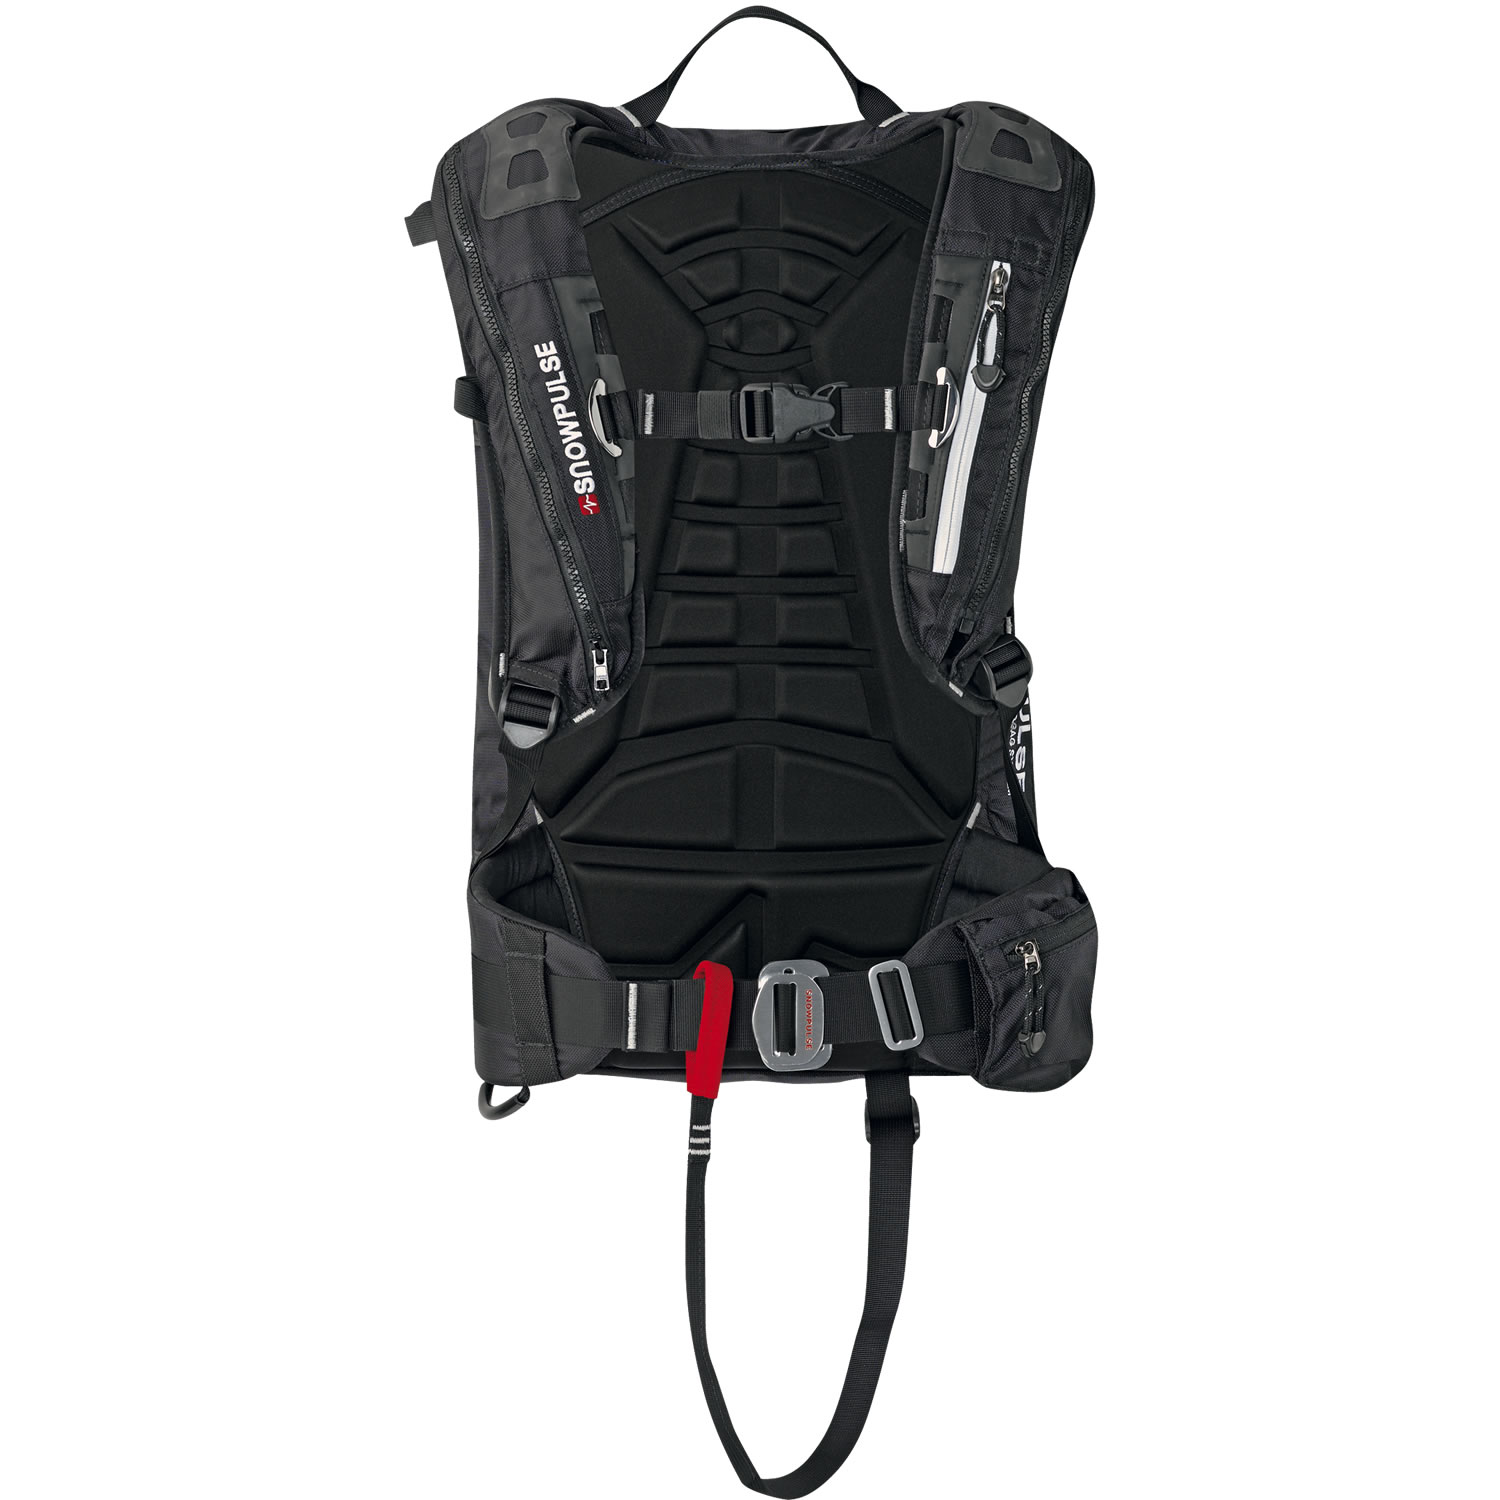 Sac à dos ABS LifeBag GUIDE 30L de Snowpulse